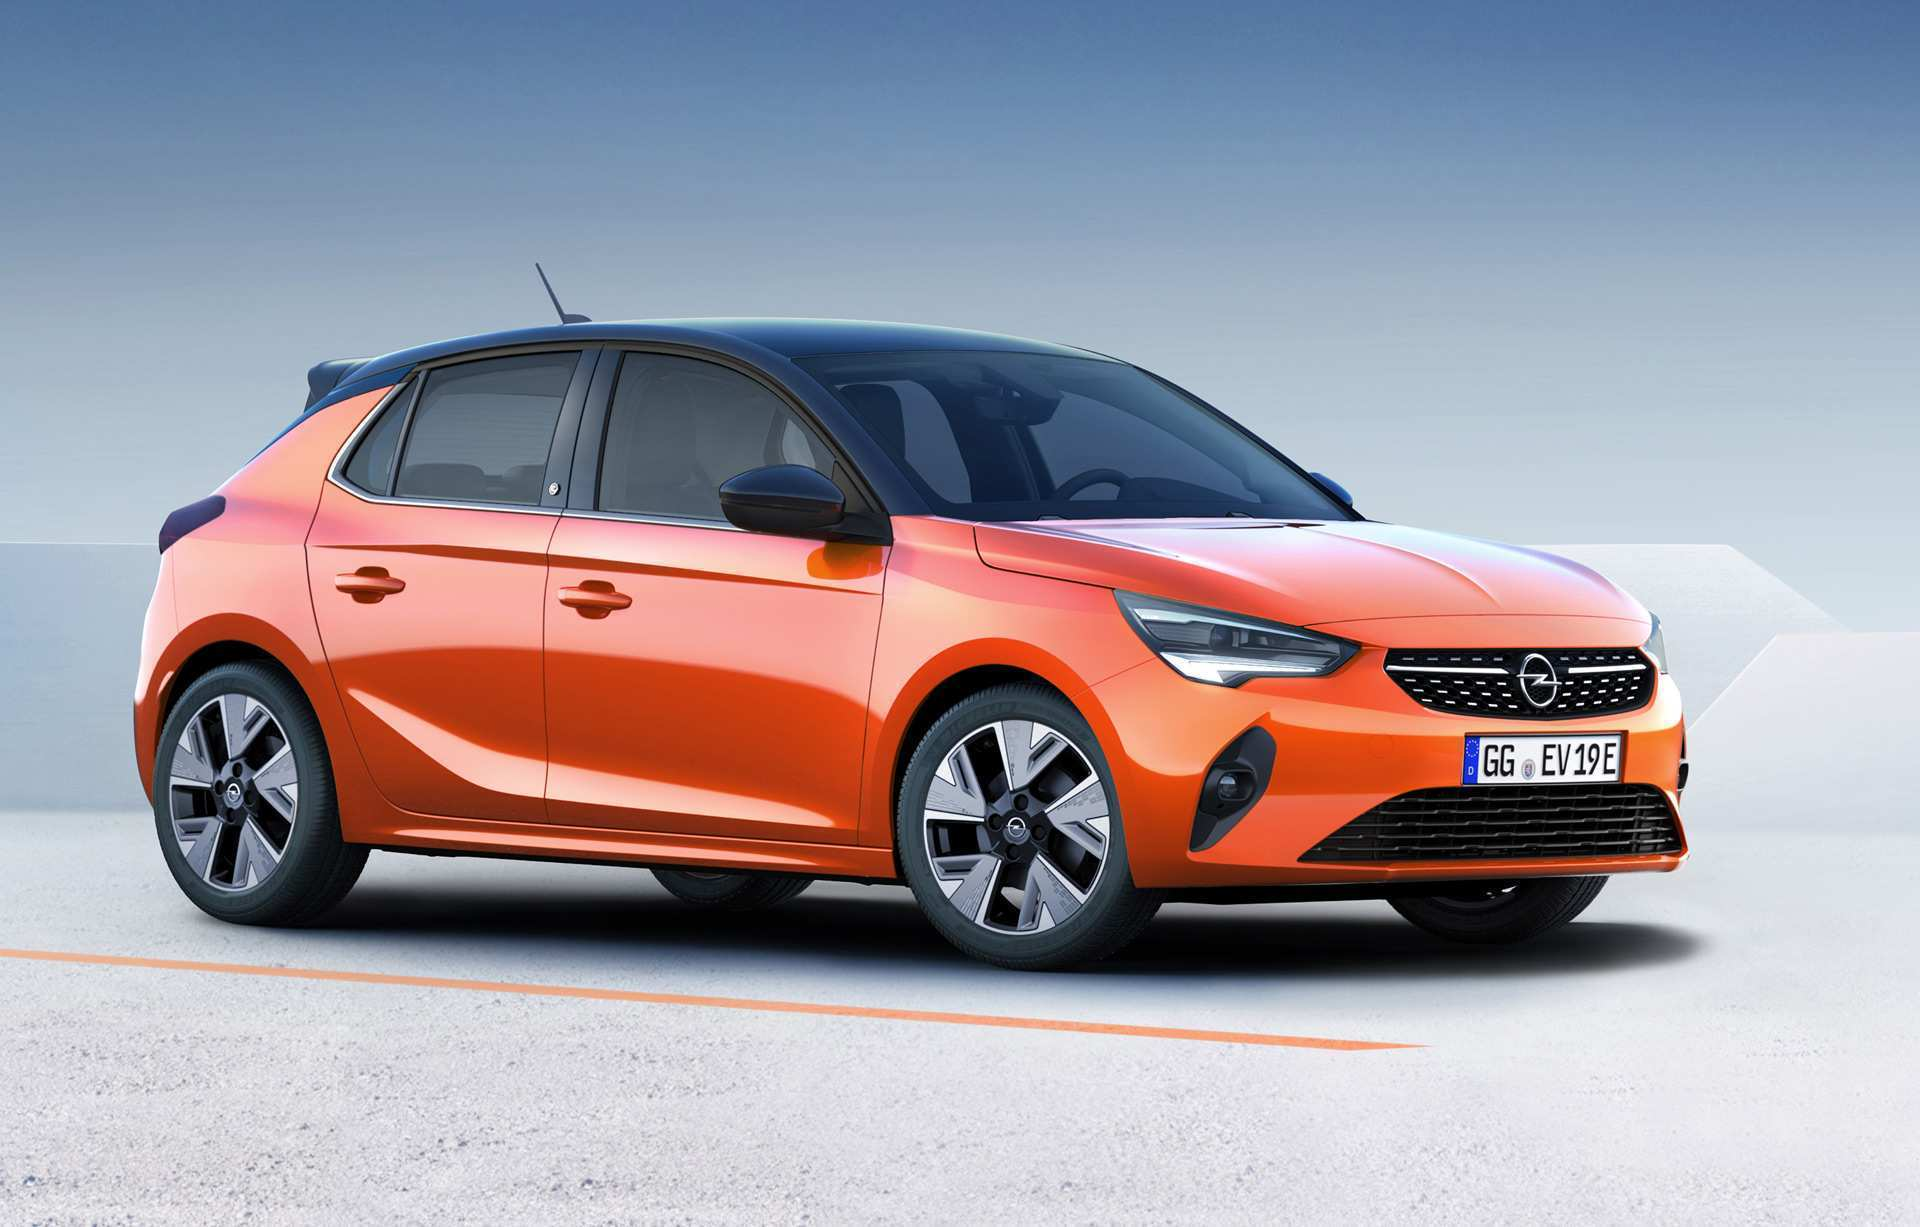 63 All New Opel Corsa Electric 2020 Price And Release Date